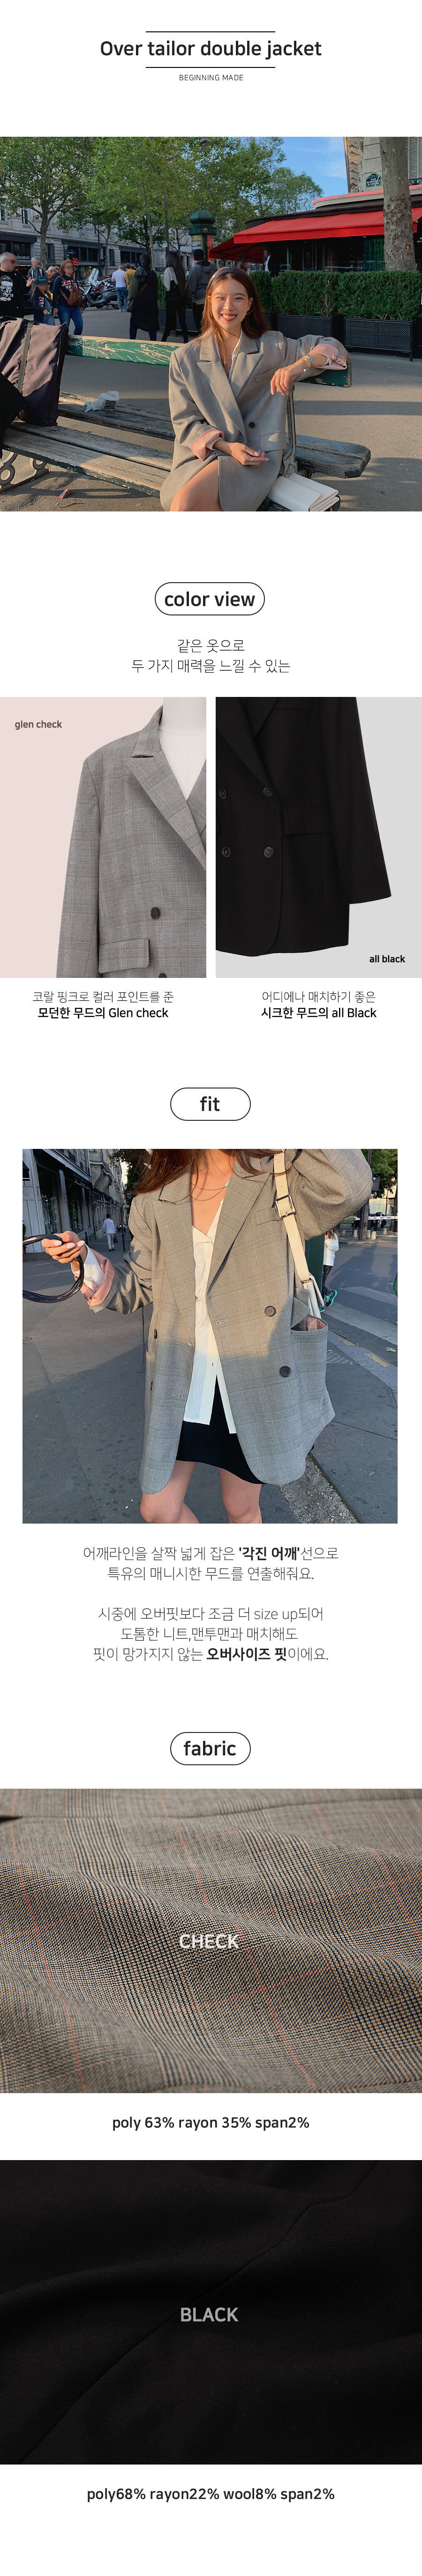 Over tailor double jacket (size : free)